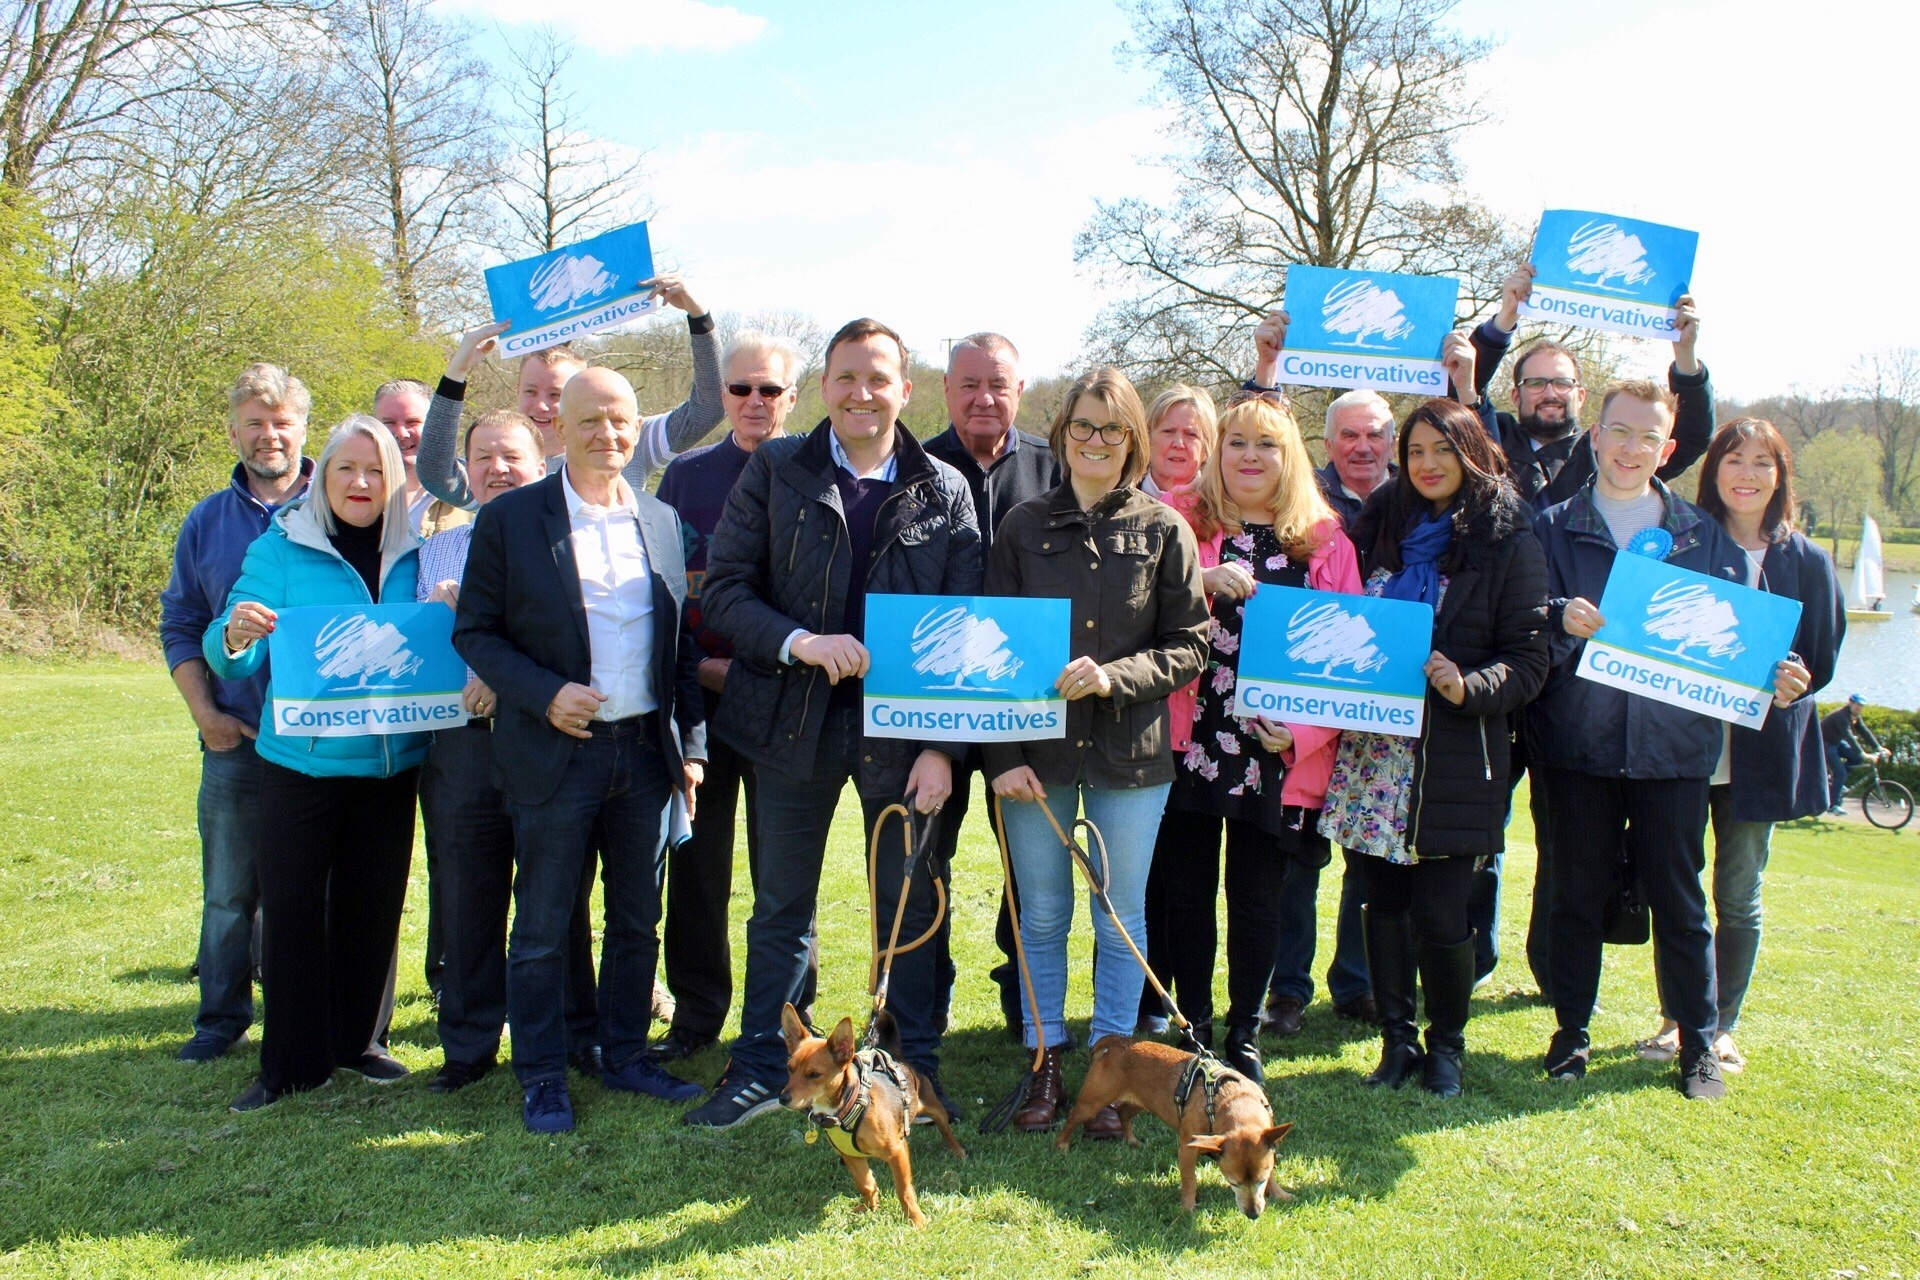 Redditch Conservative manifesto: New homes, more jobs, and a better town centre